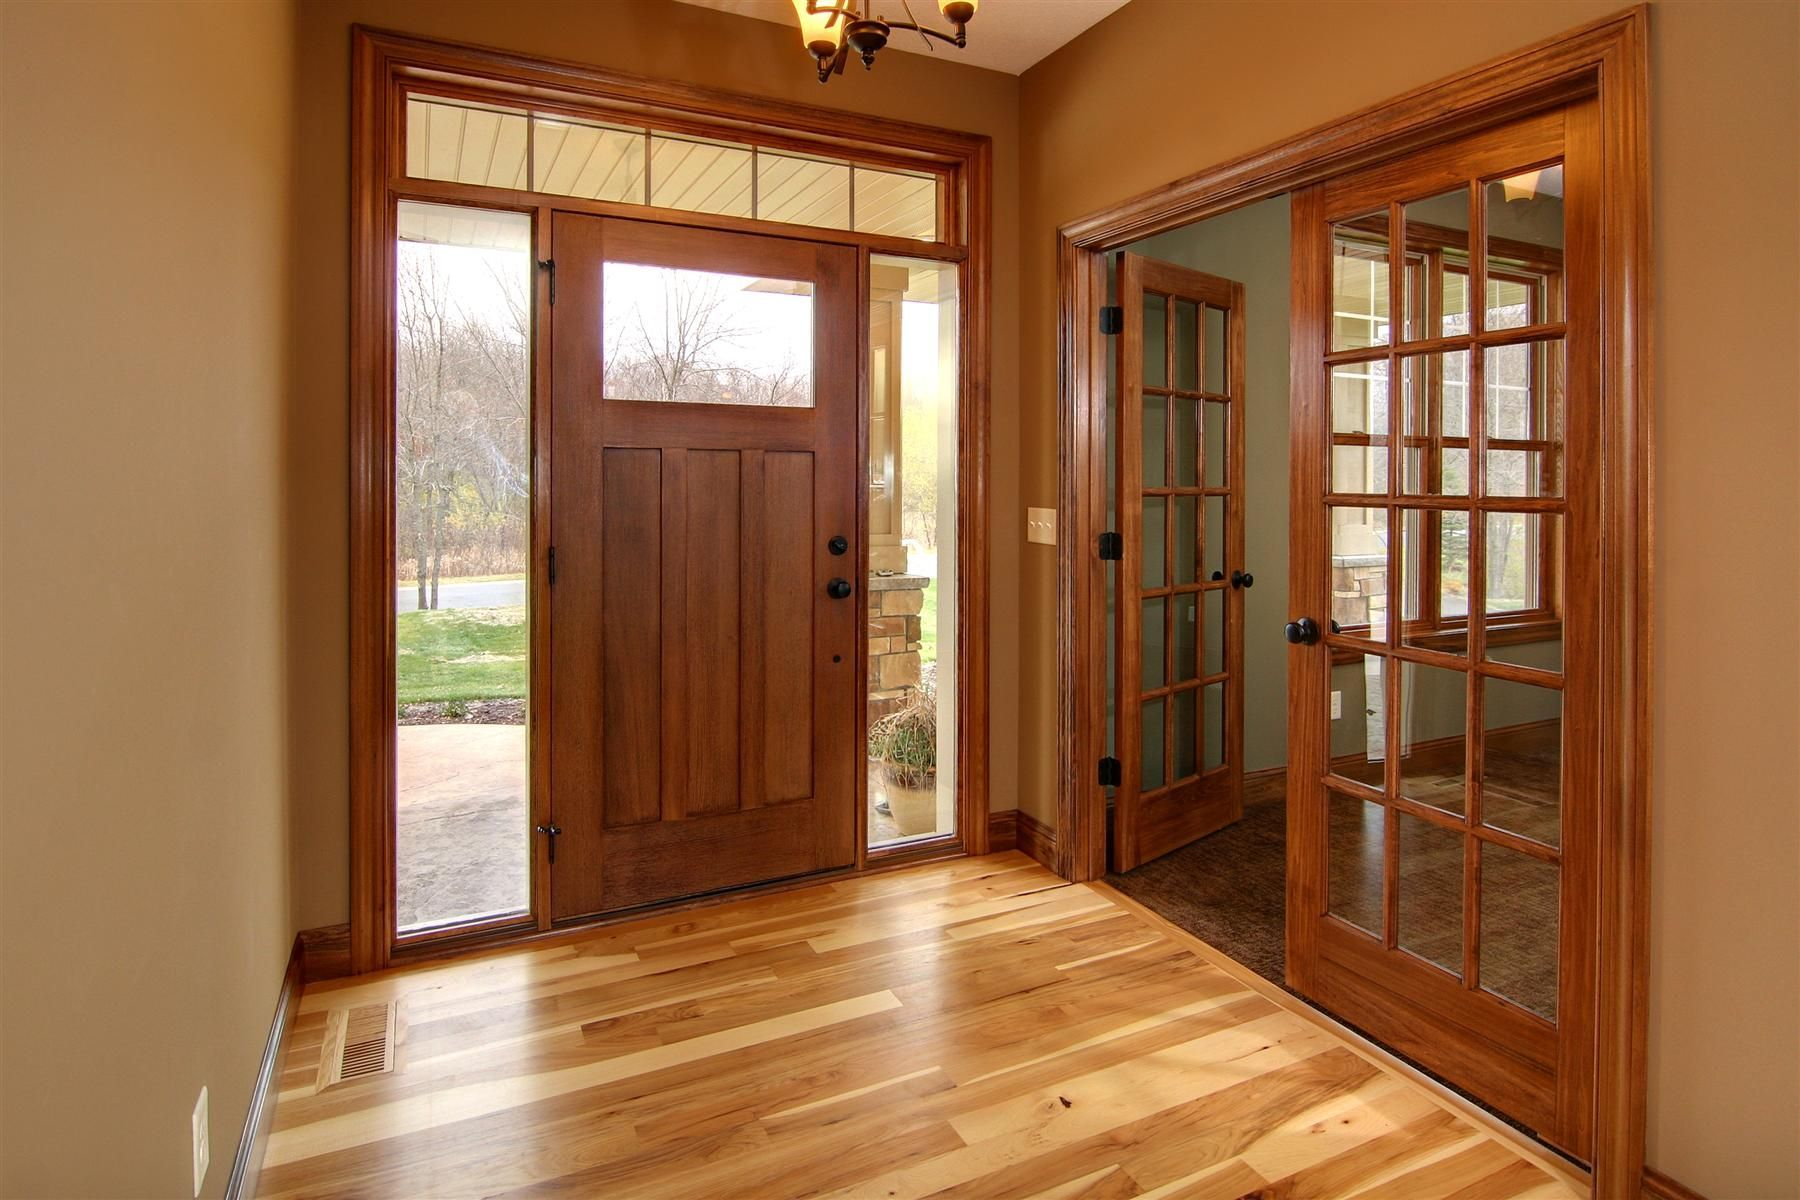 Hickory Floor Cherry Stained Doors And Trim Oak Wood